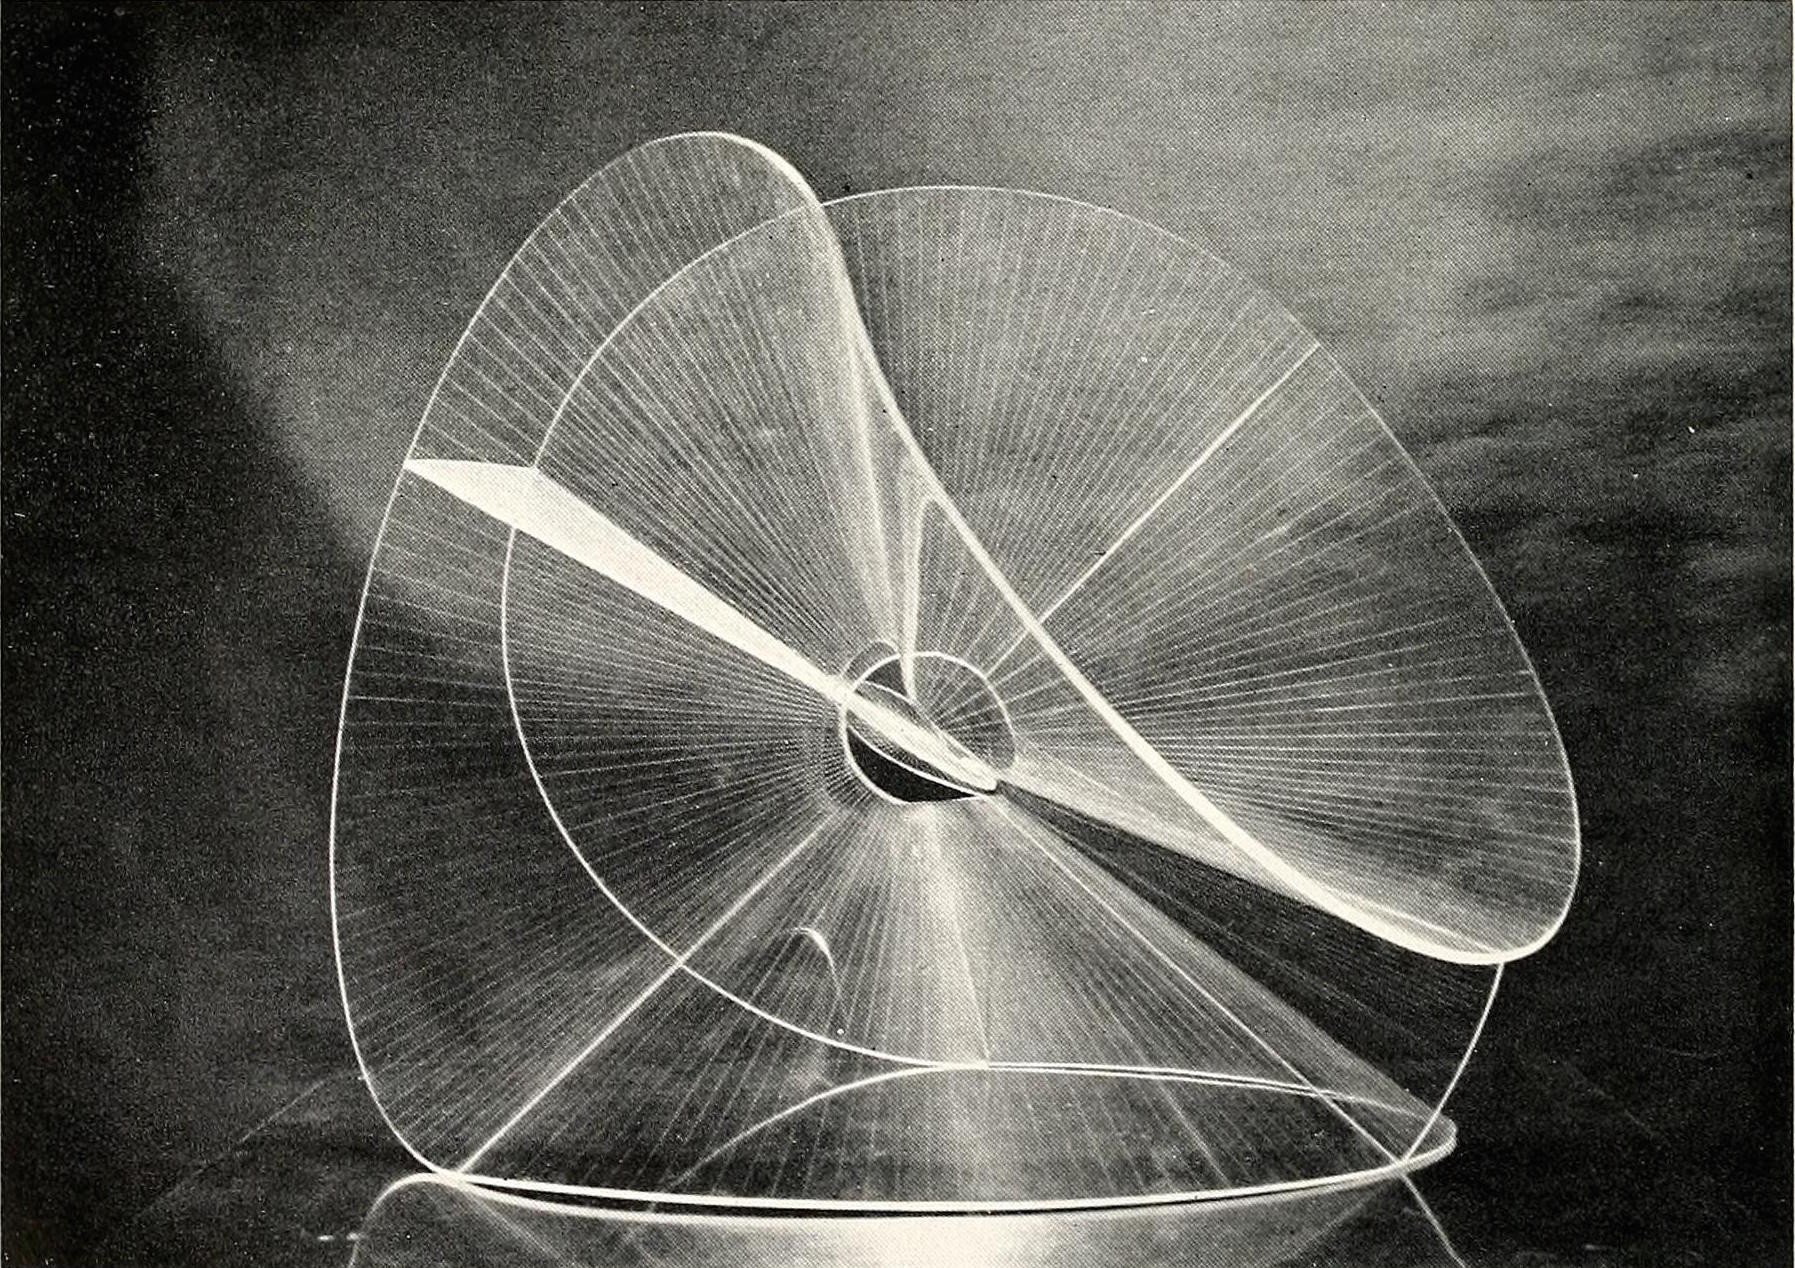 Naum Gabo, translucent variation on a spheric theme (1937), 22,75 inches high